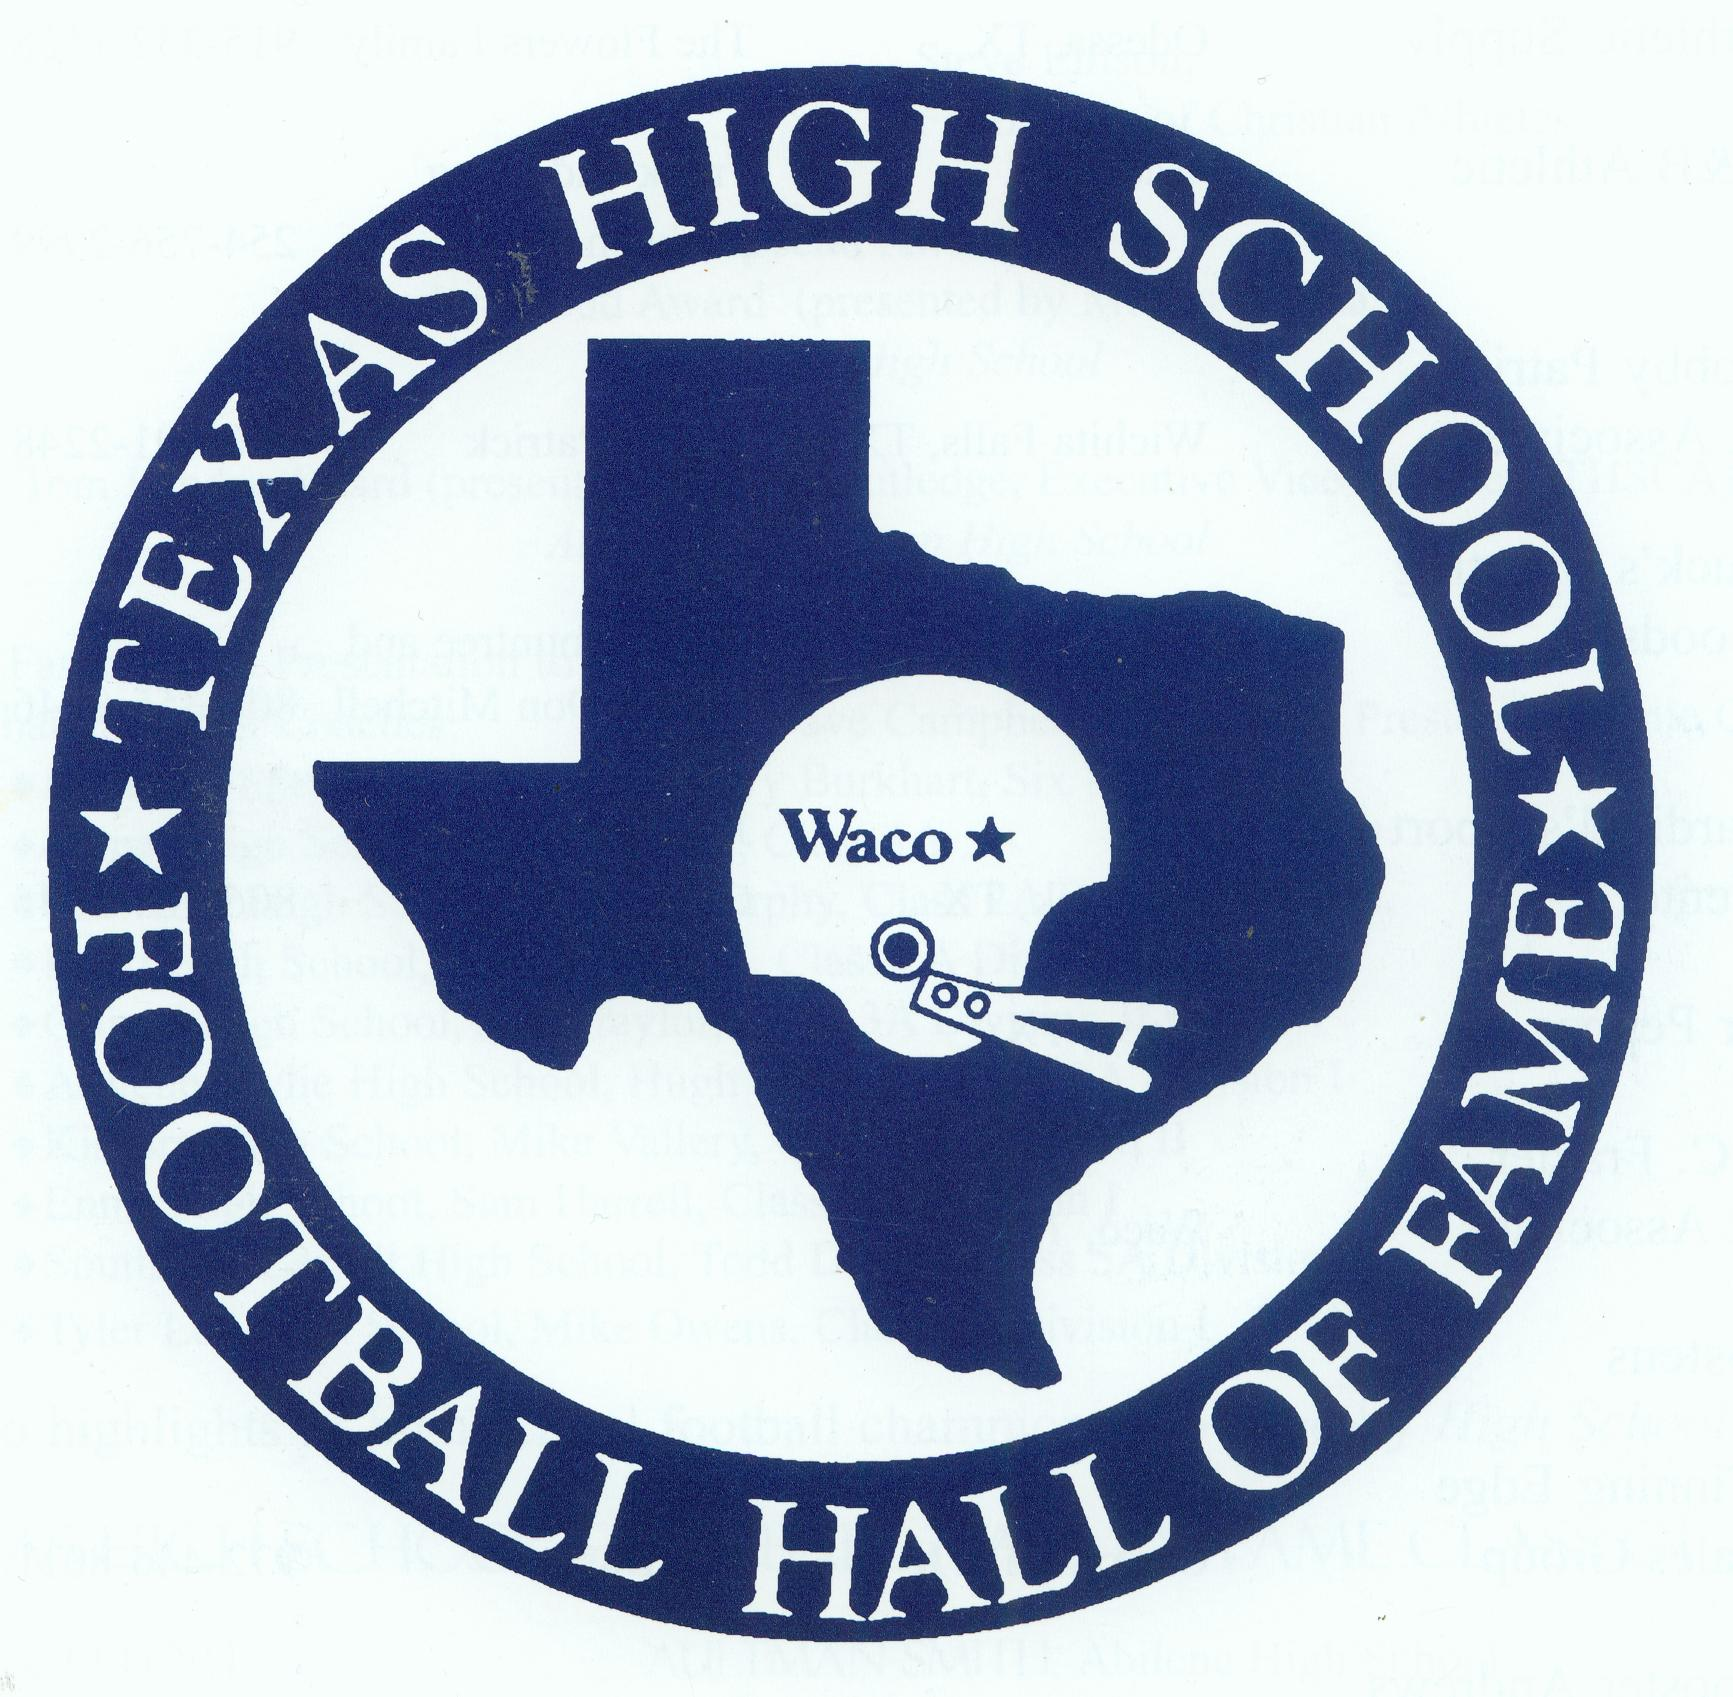 Texas High School Football Hall of Fame